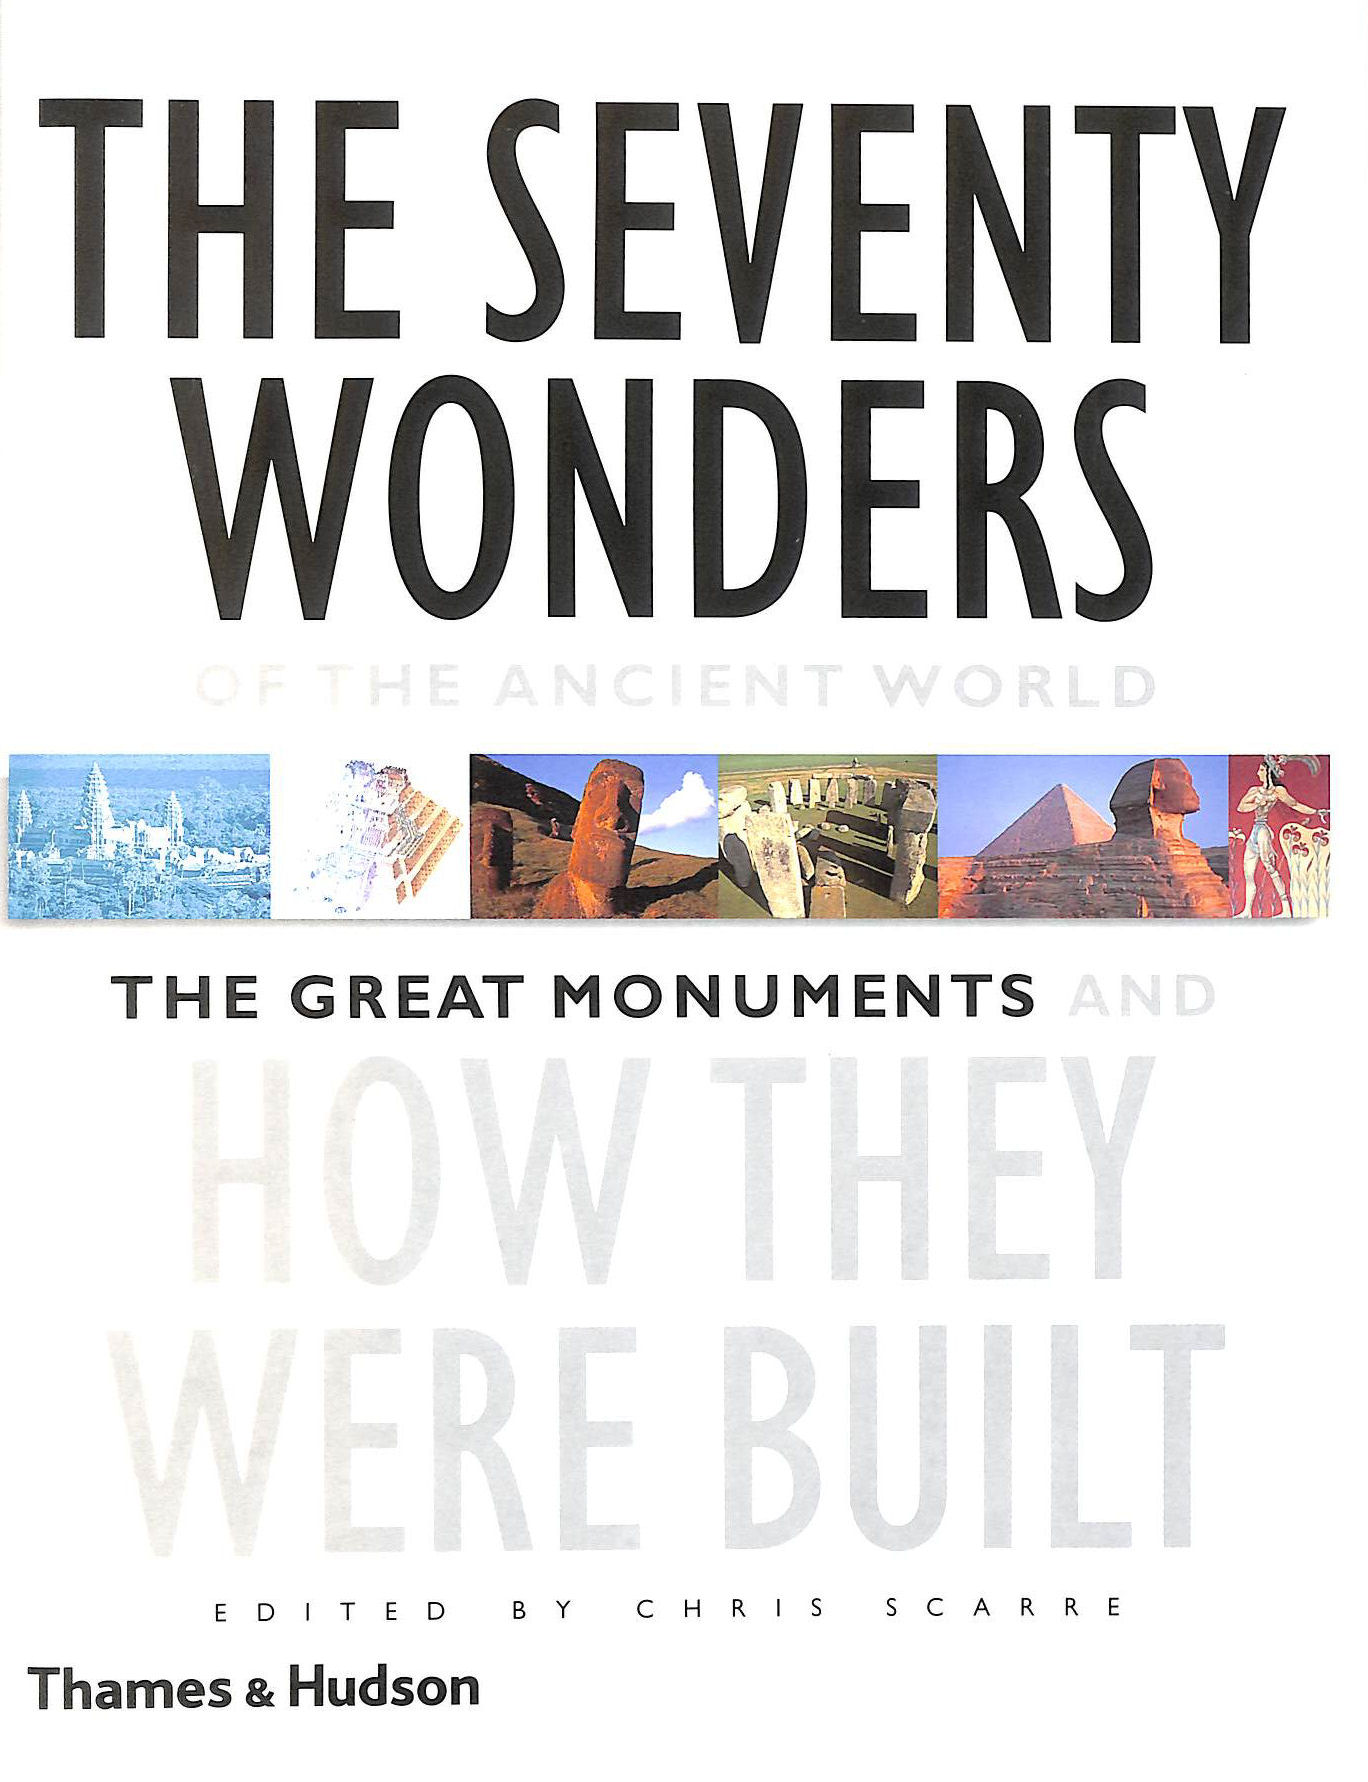 CHRIS SCARRE - The Seventy Wonders of the Ancient World: The Great Monuments and How They Were Built